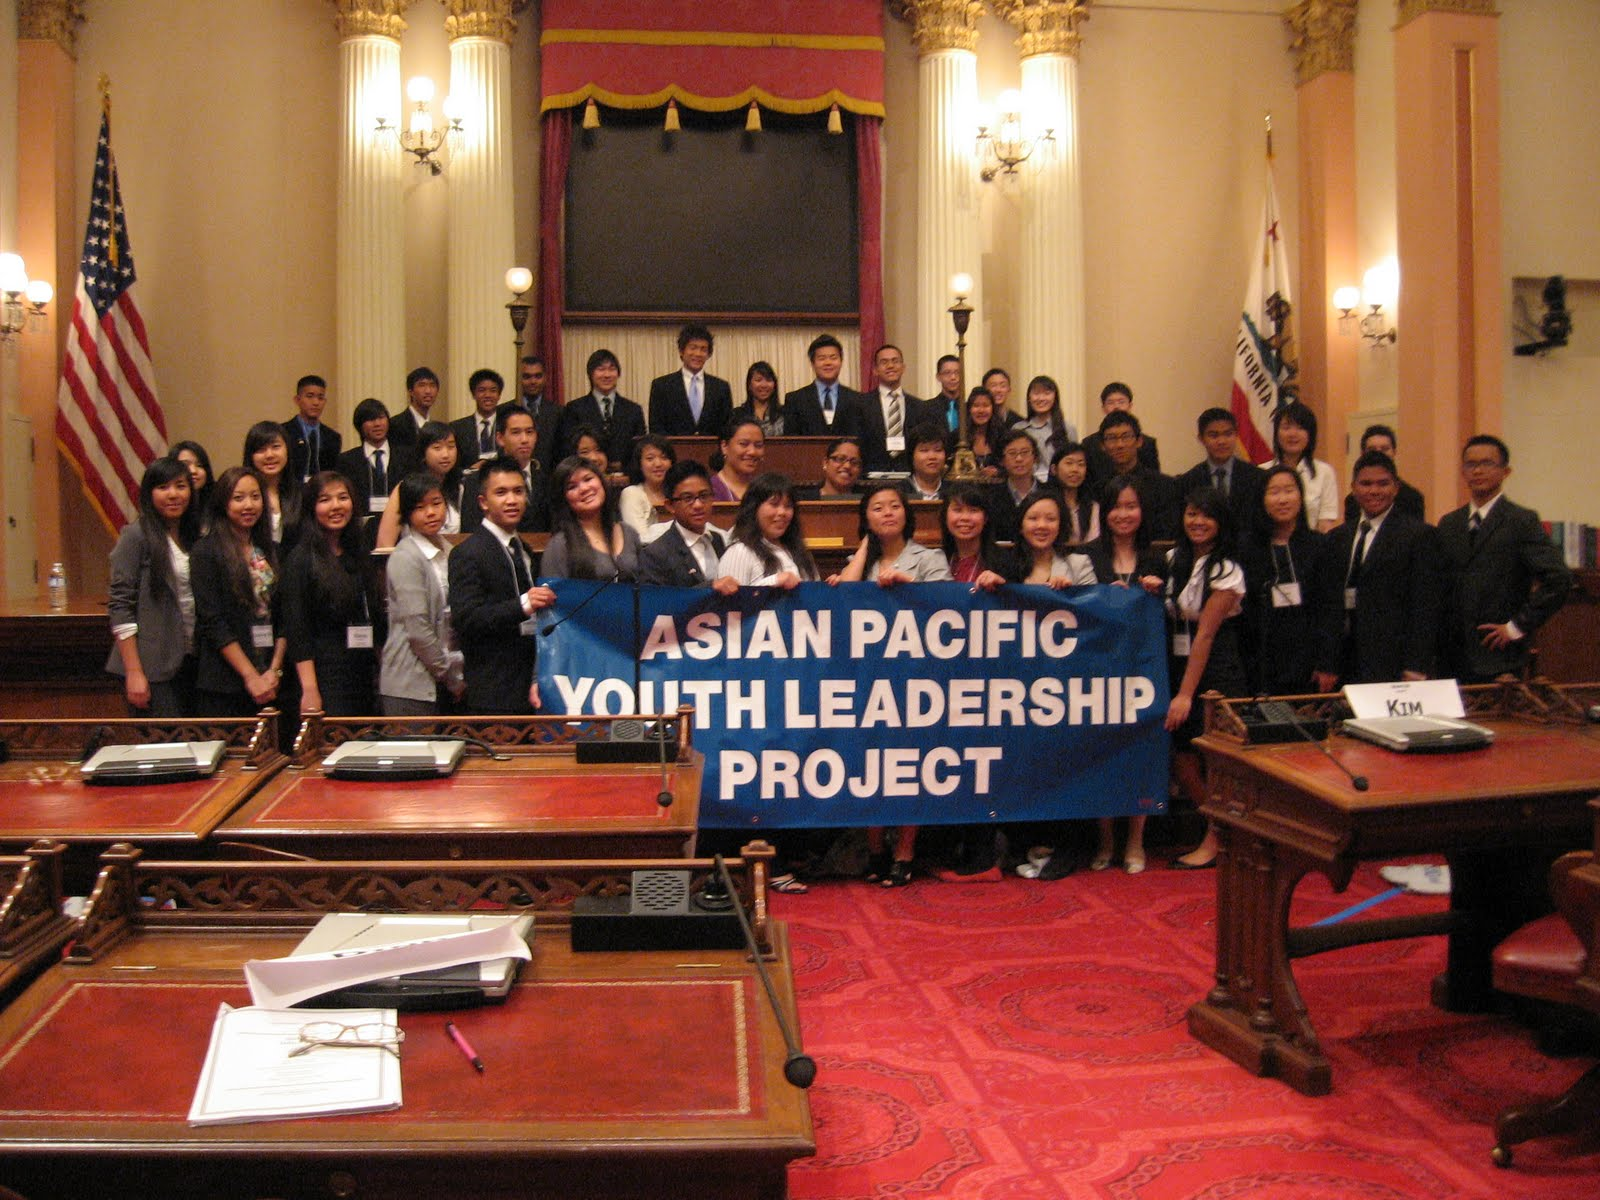 Asian pacific youth leadership project